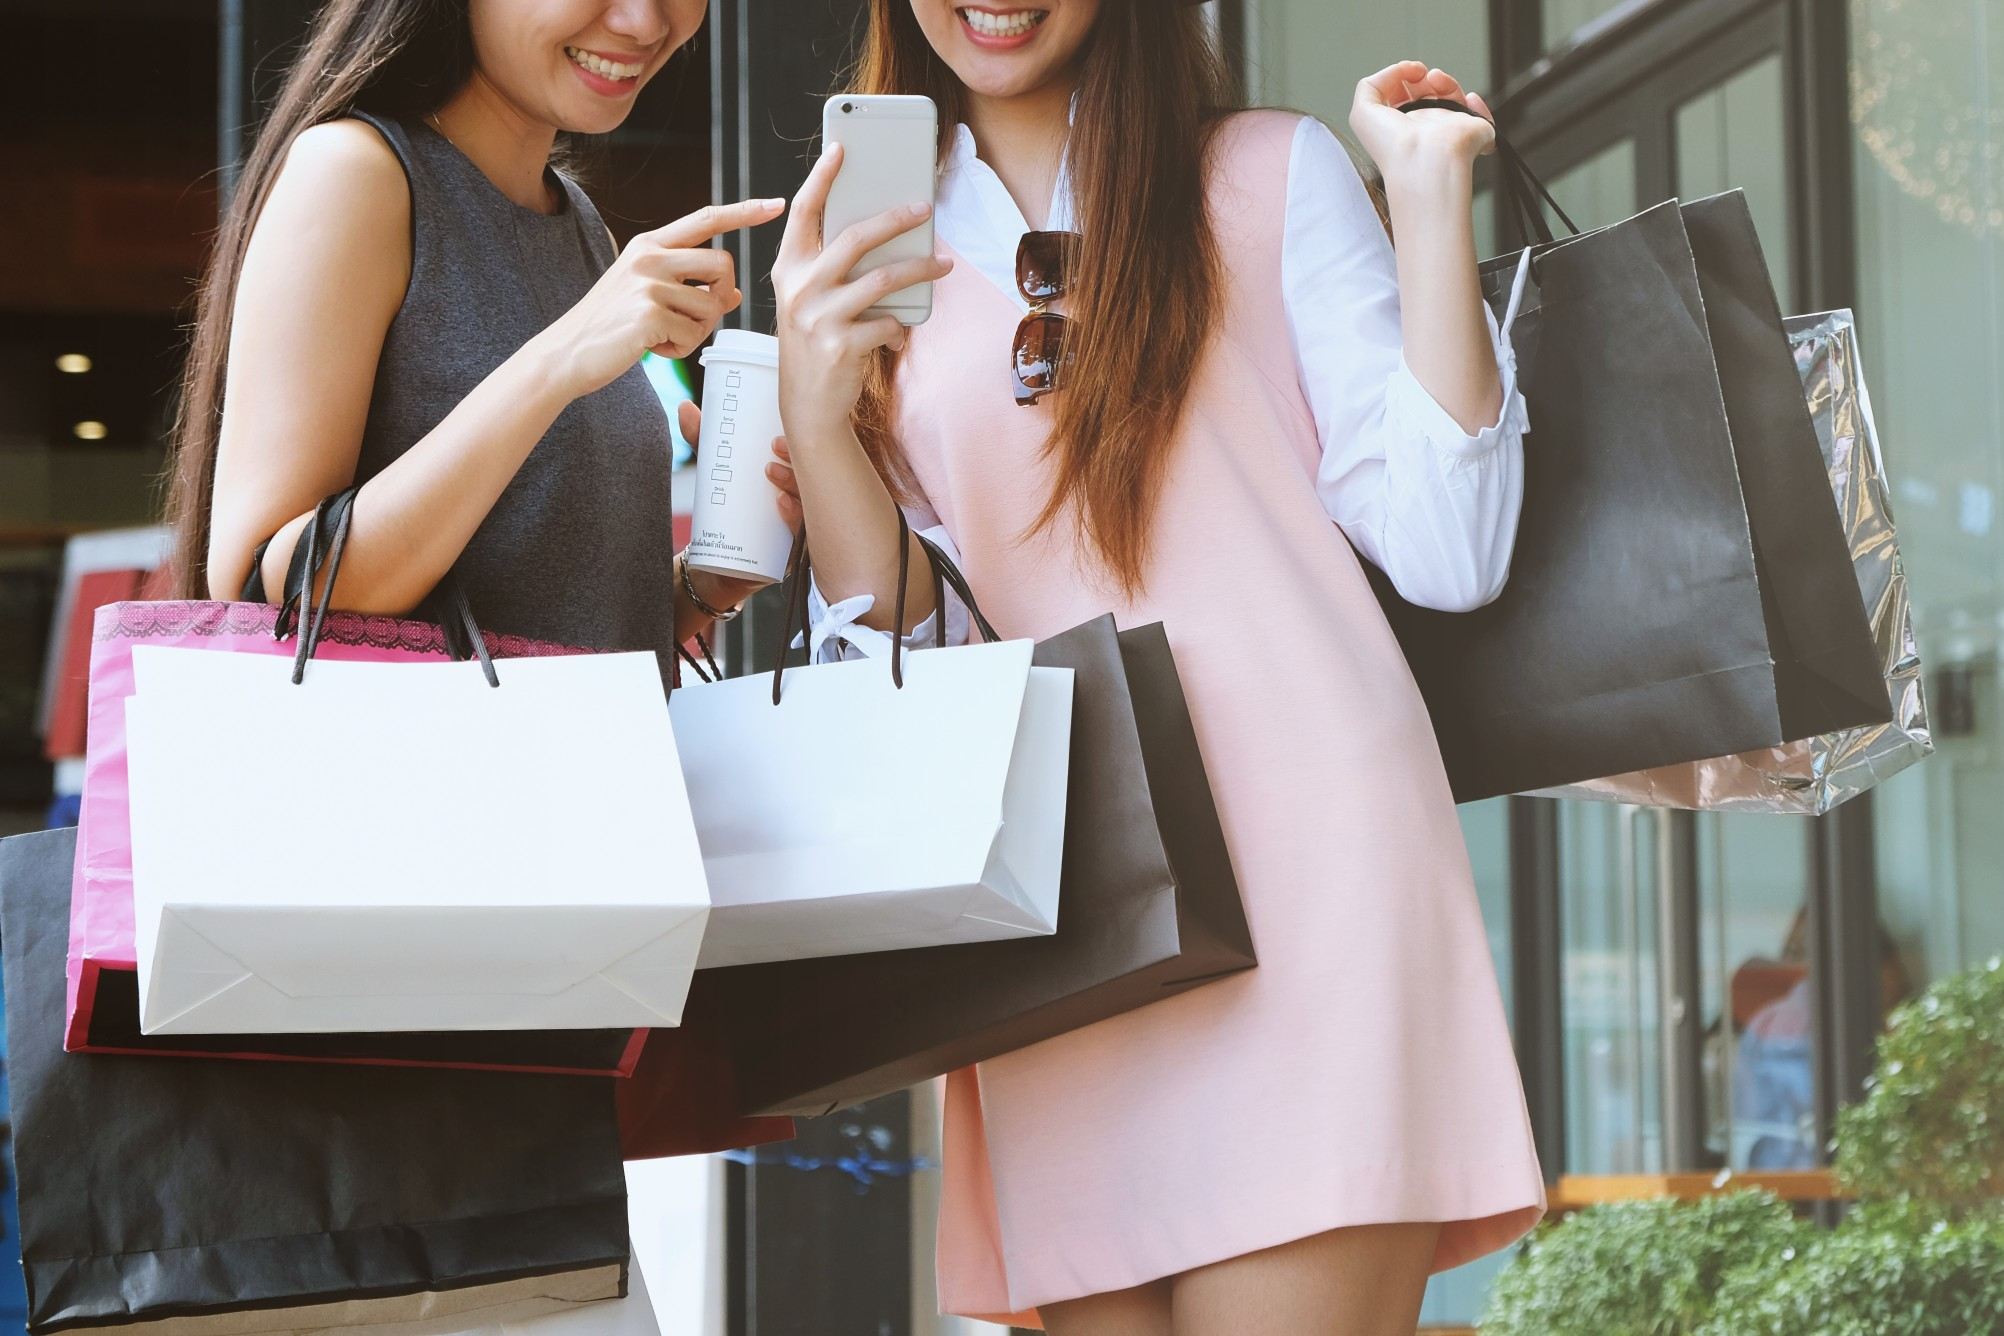 two-women-carrying-shopping-bags-while-using-smartphone-and-holding-coffee-in-the-city-street_t20_d12wRA